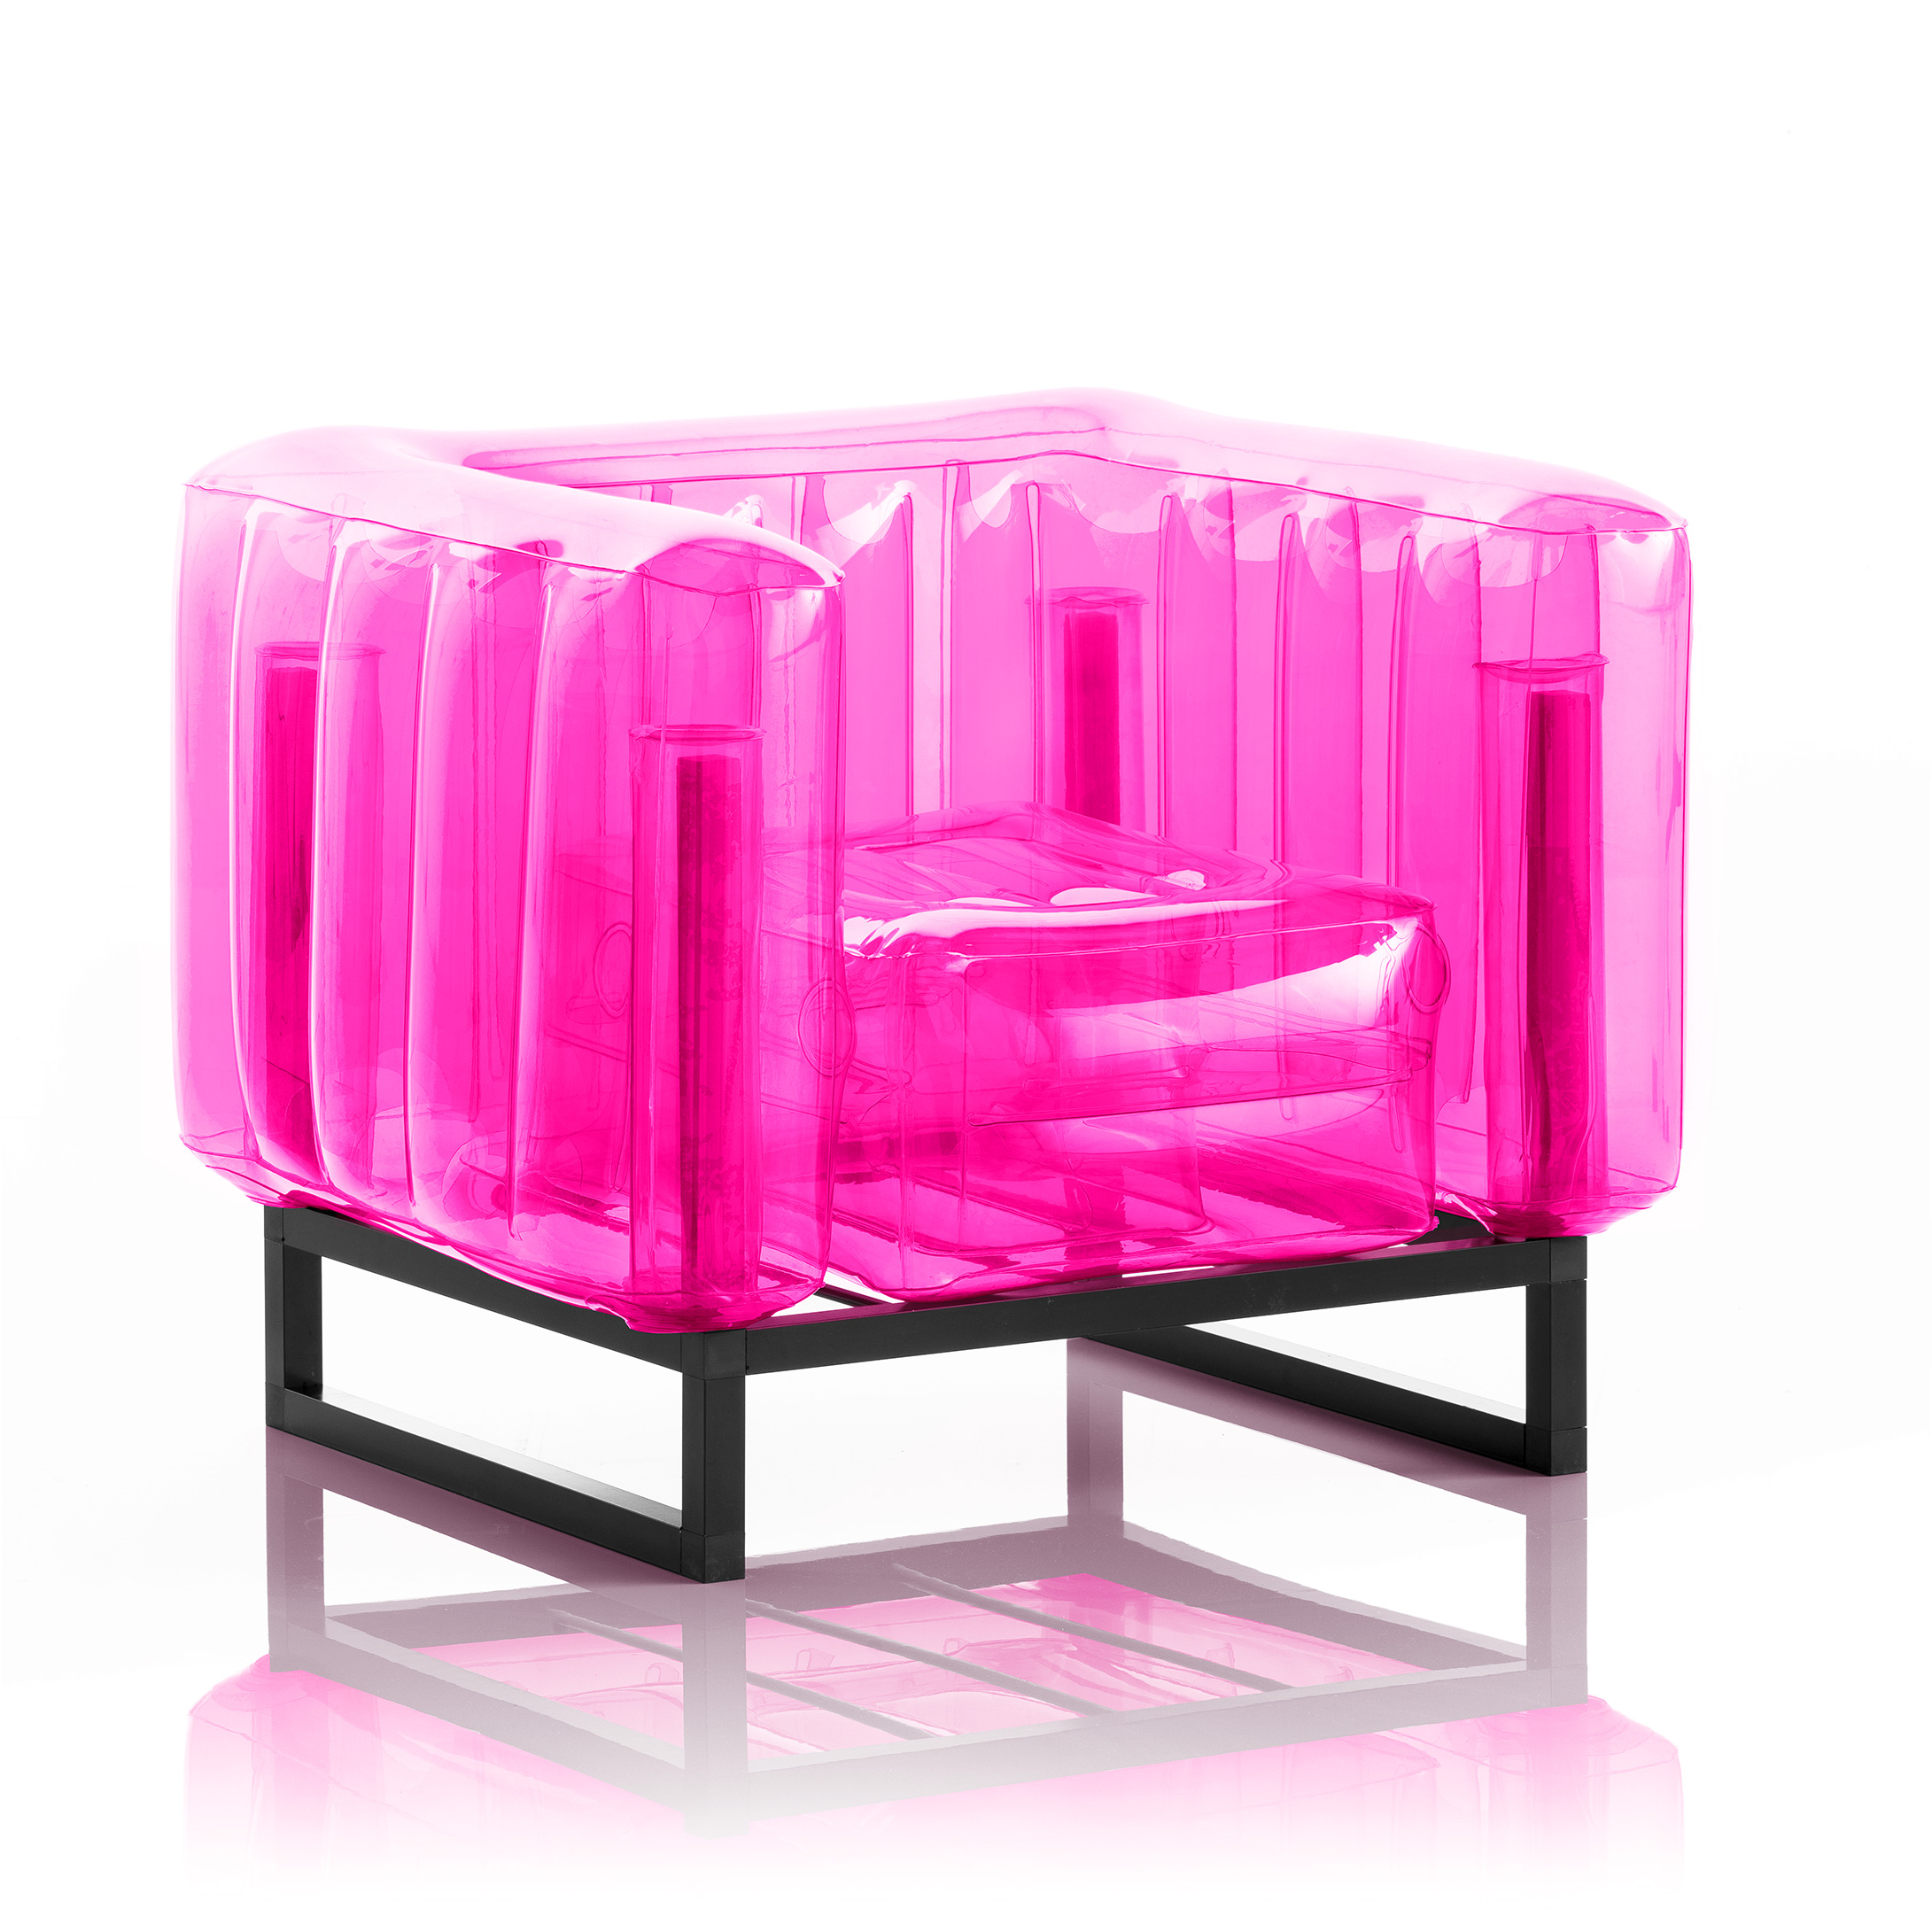 Canapé 2 places cadre bois assise thermoplastique rose crystal